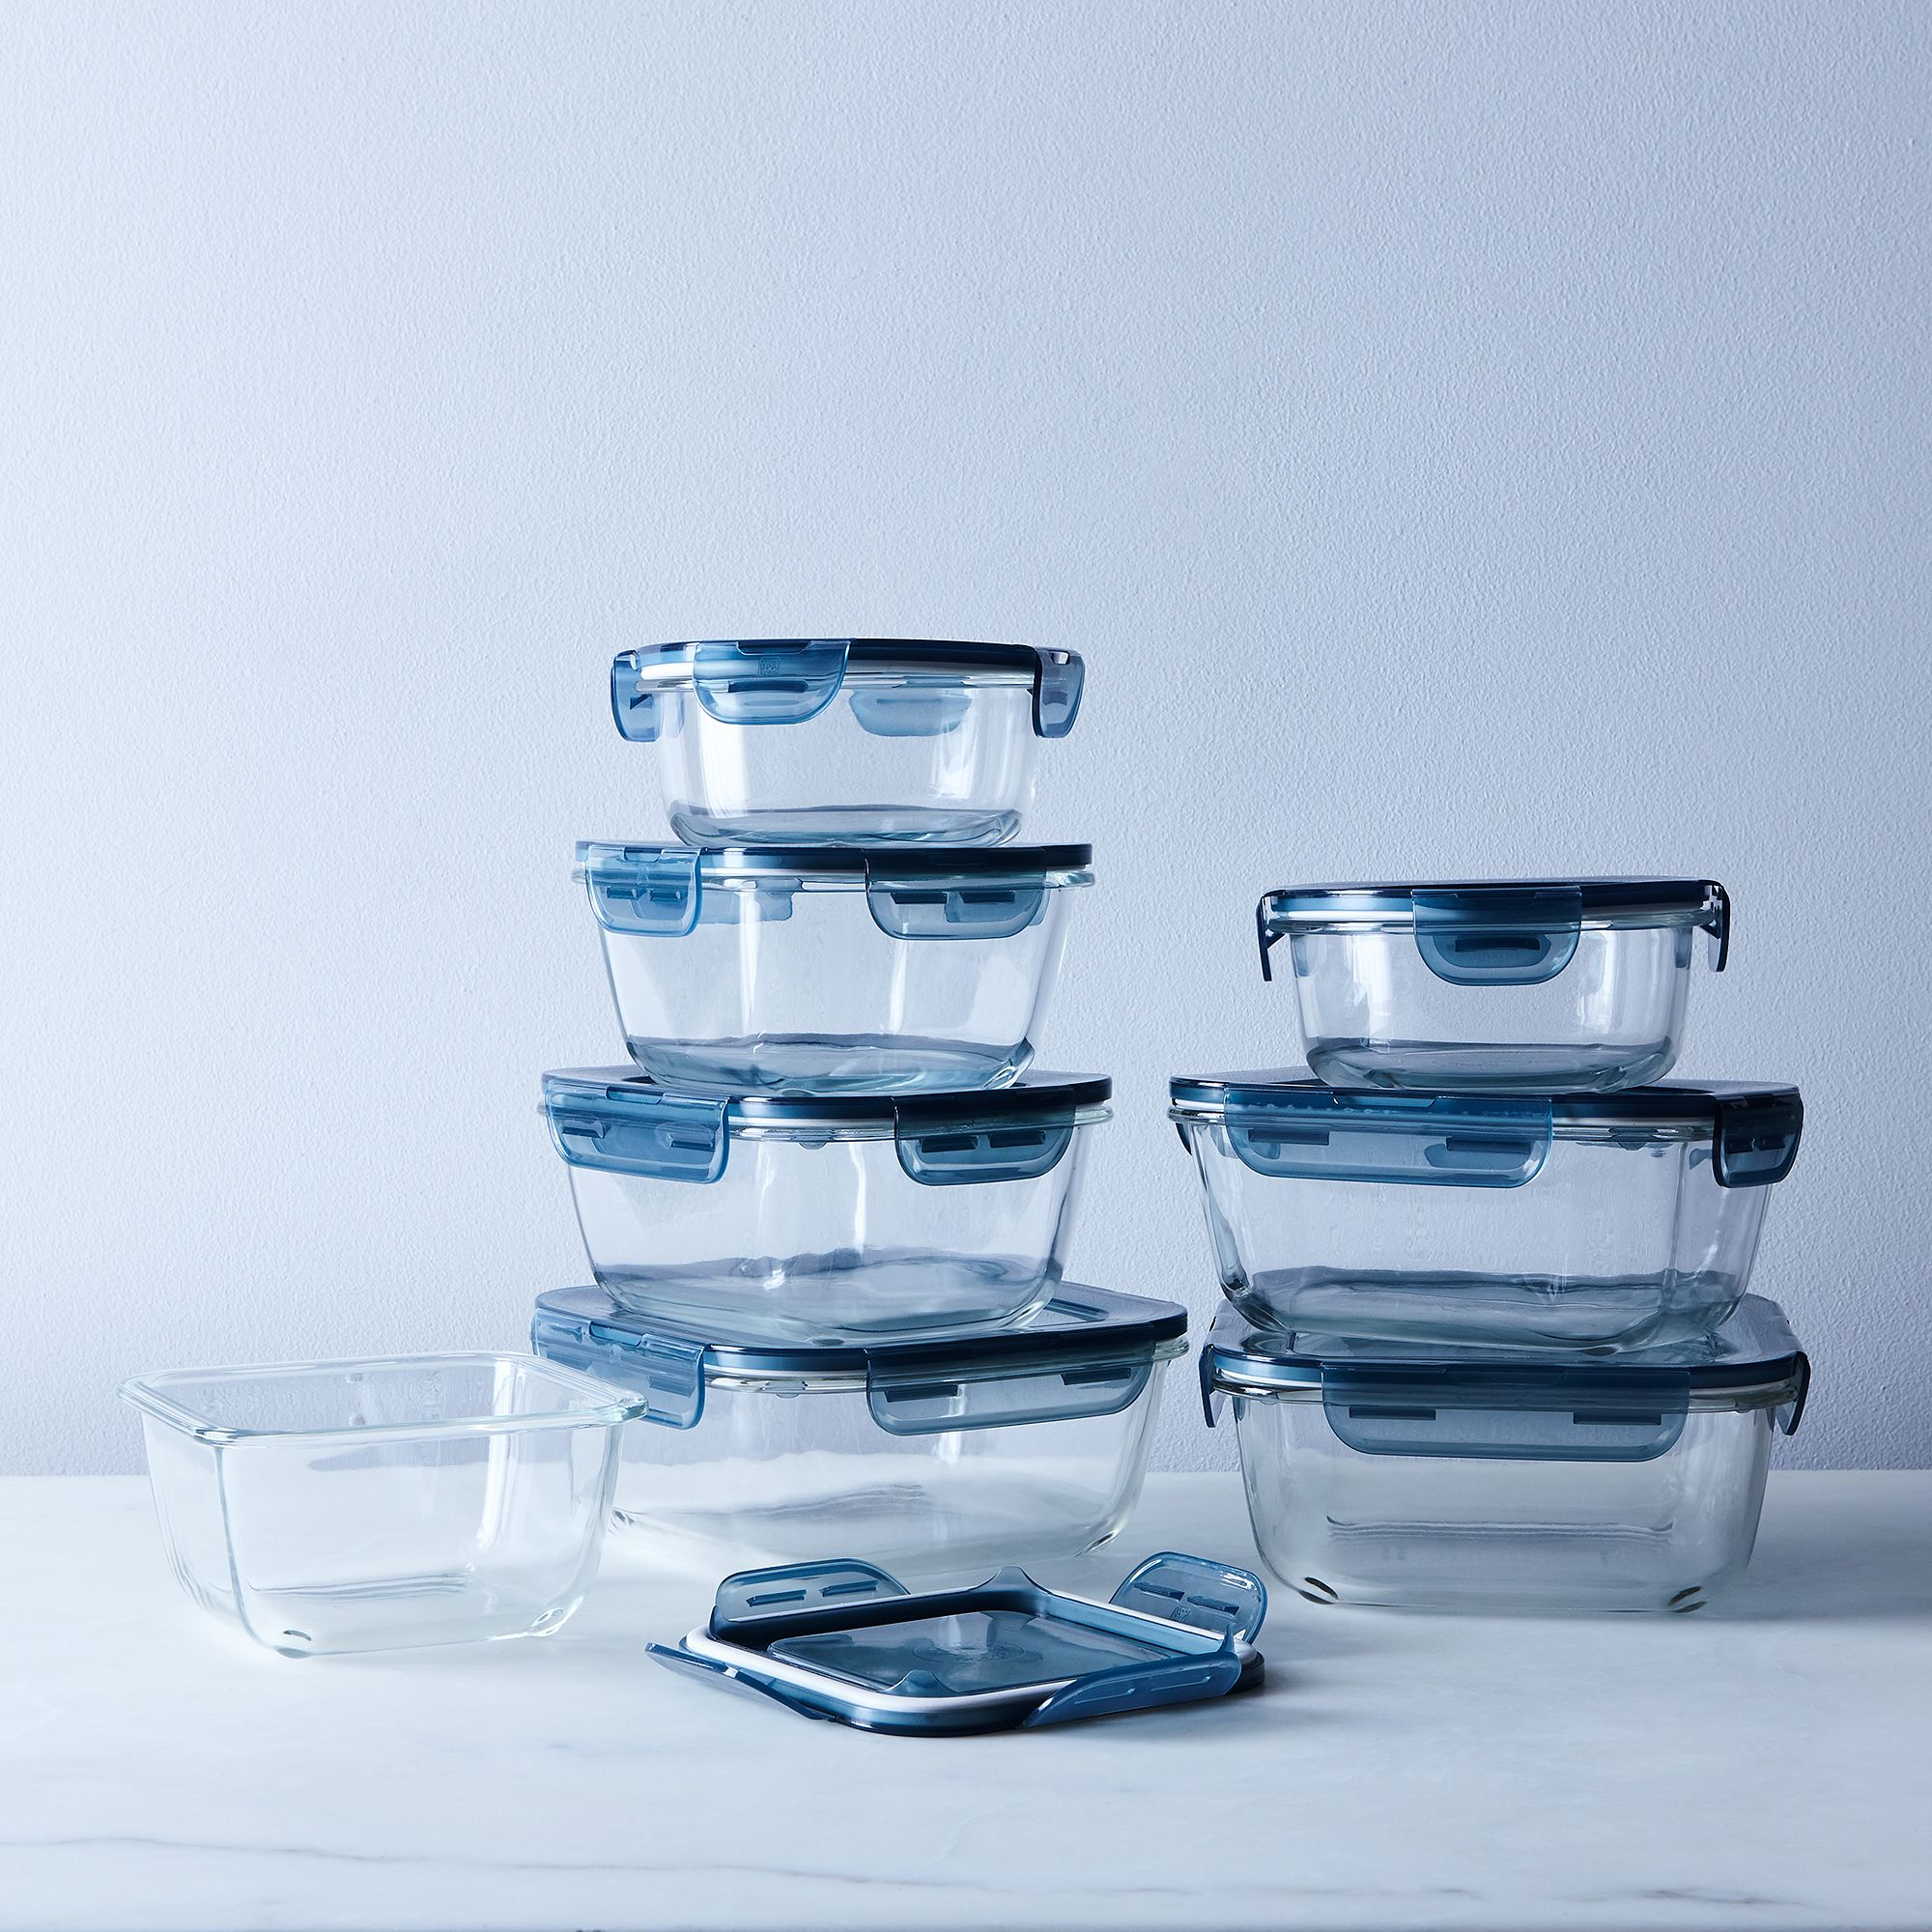 254644bd 1594 4f94 b5e4 ee9d85fcb111  2017 0711 bormioli rocco evolution glass storage containers set of 8 silo rocky luten 015